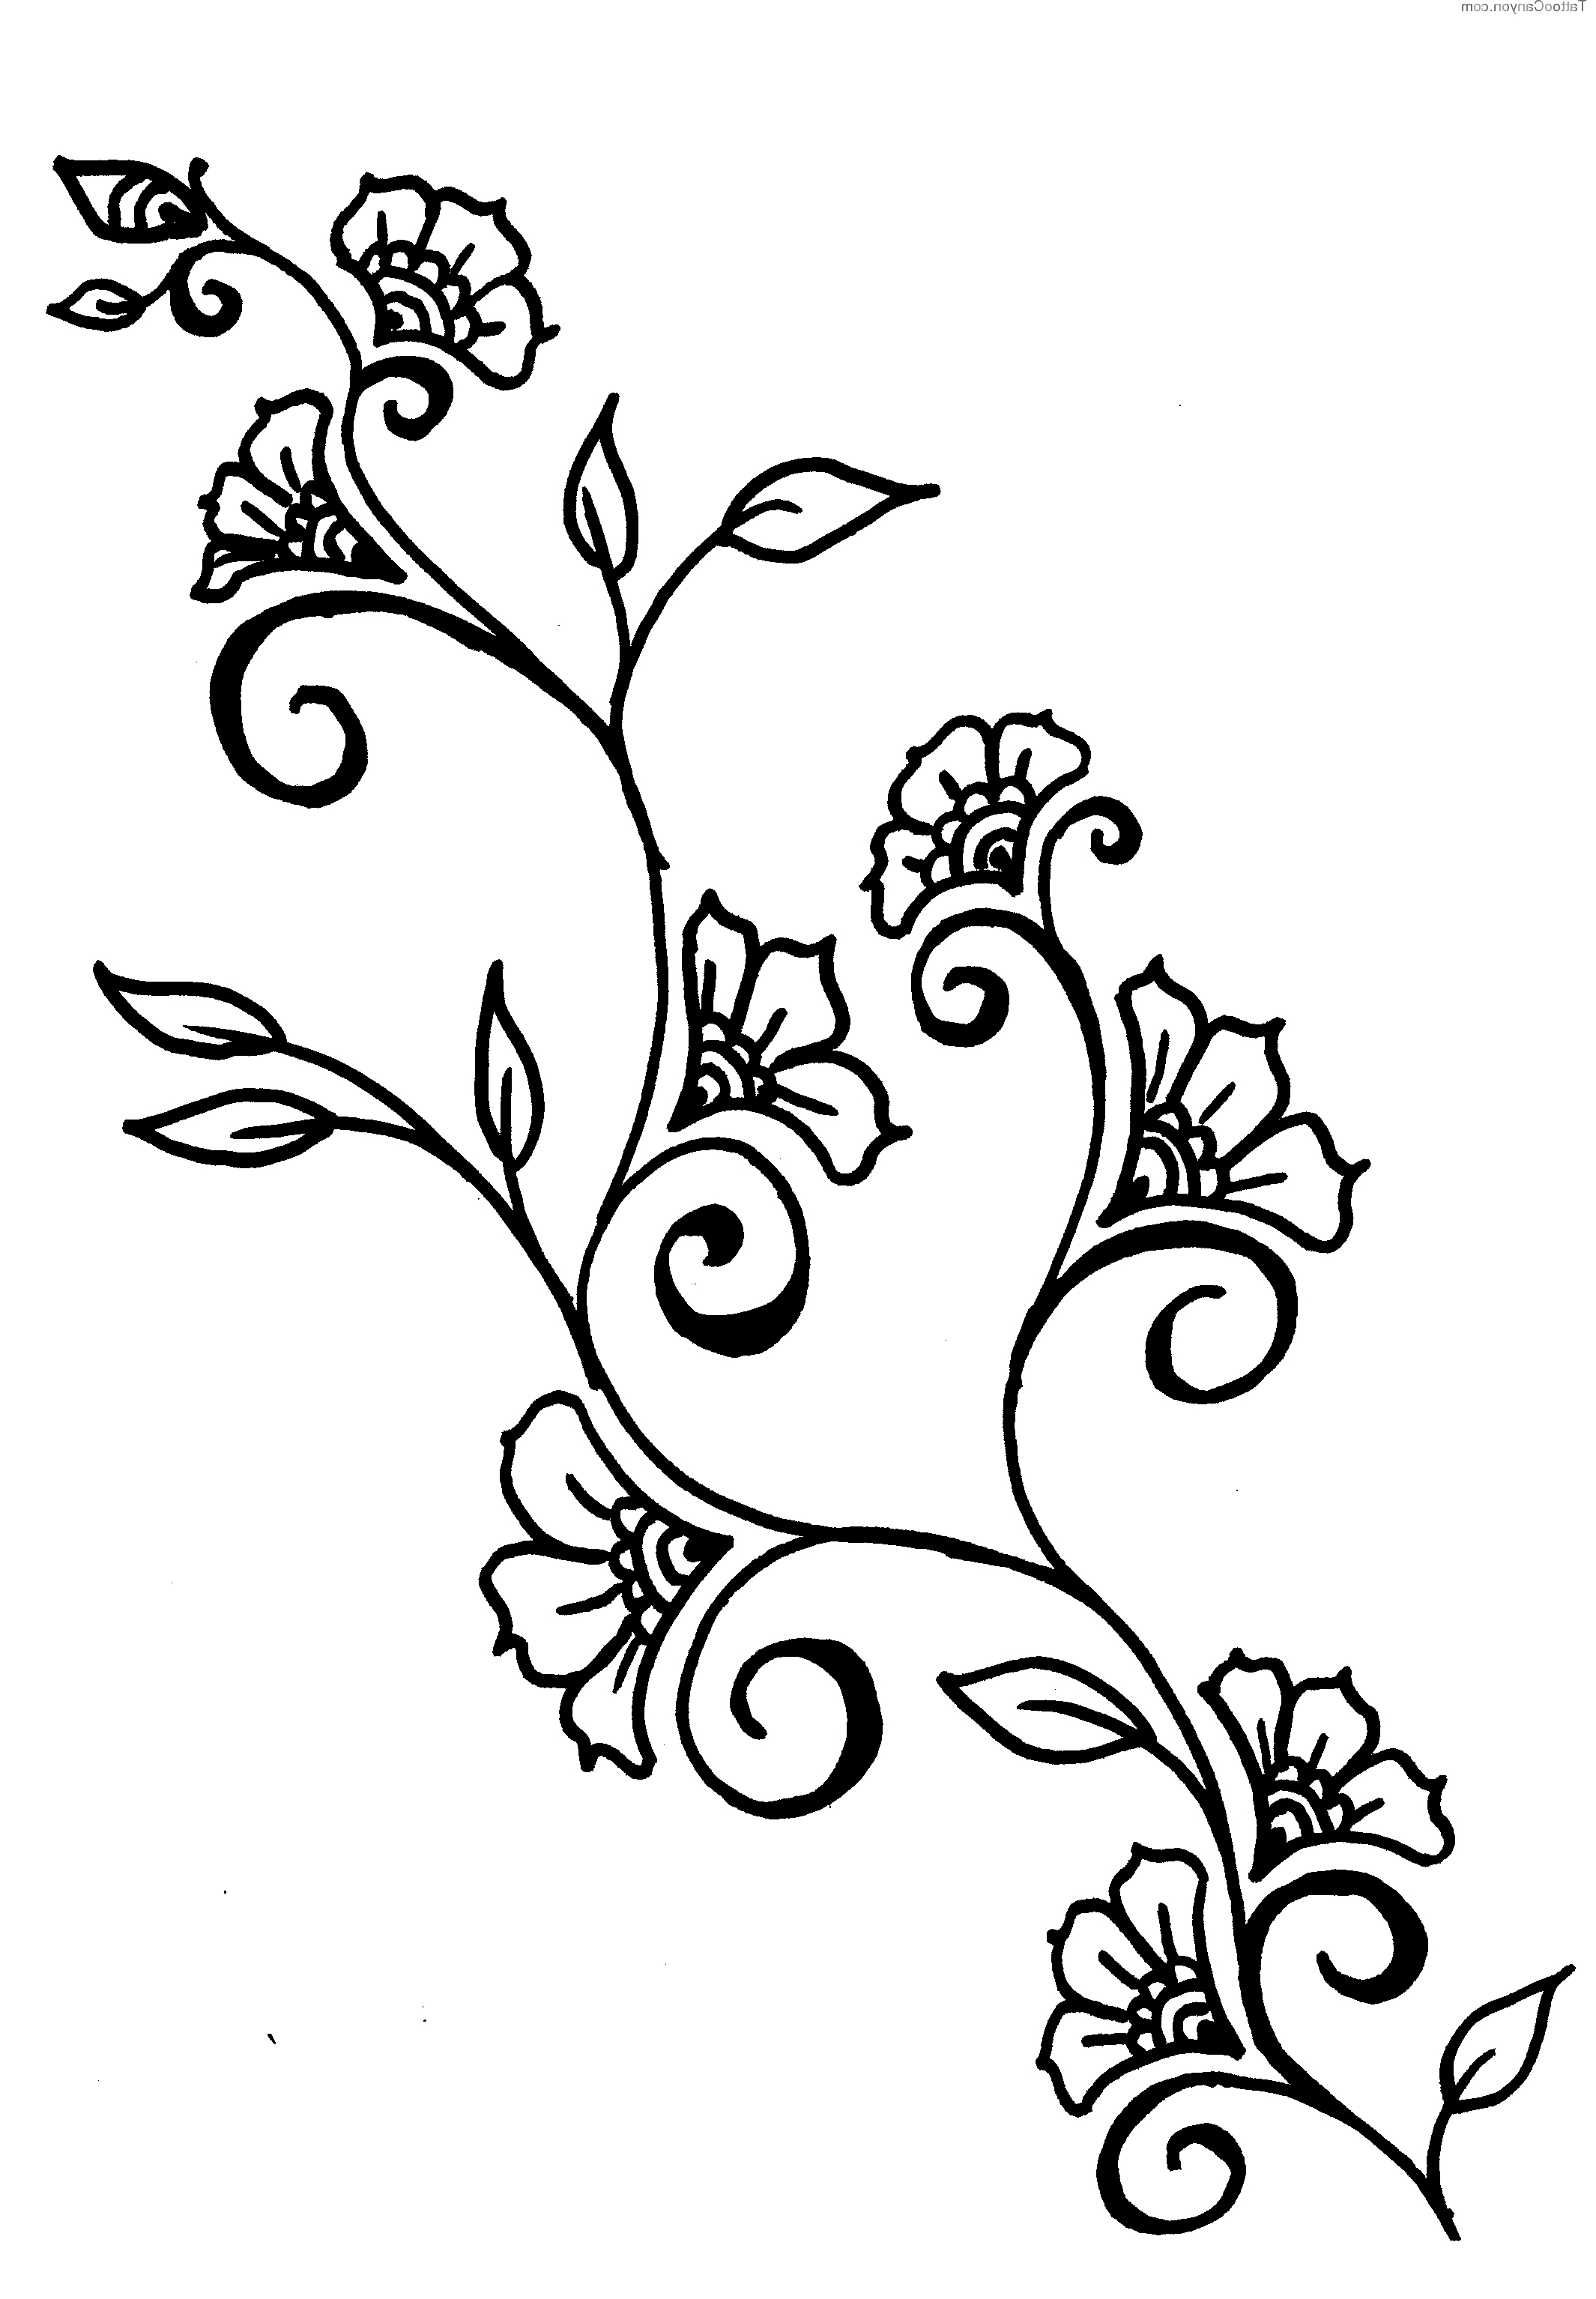 2130x3068 Drawings Of Vines And Flowers Easy Drawings Of Flowers And Vines